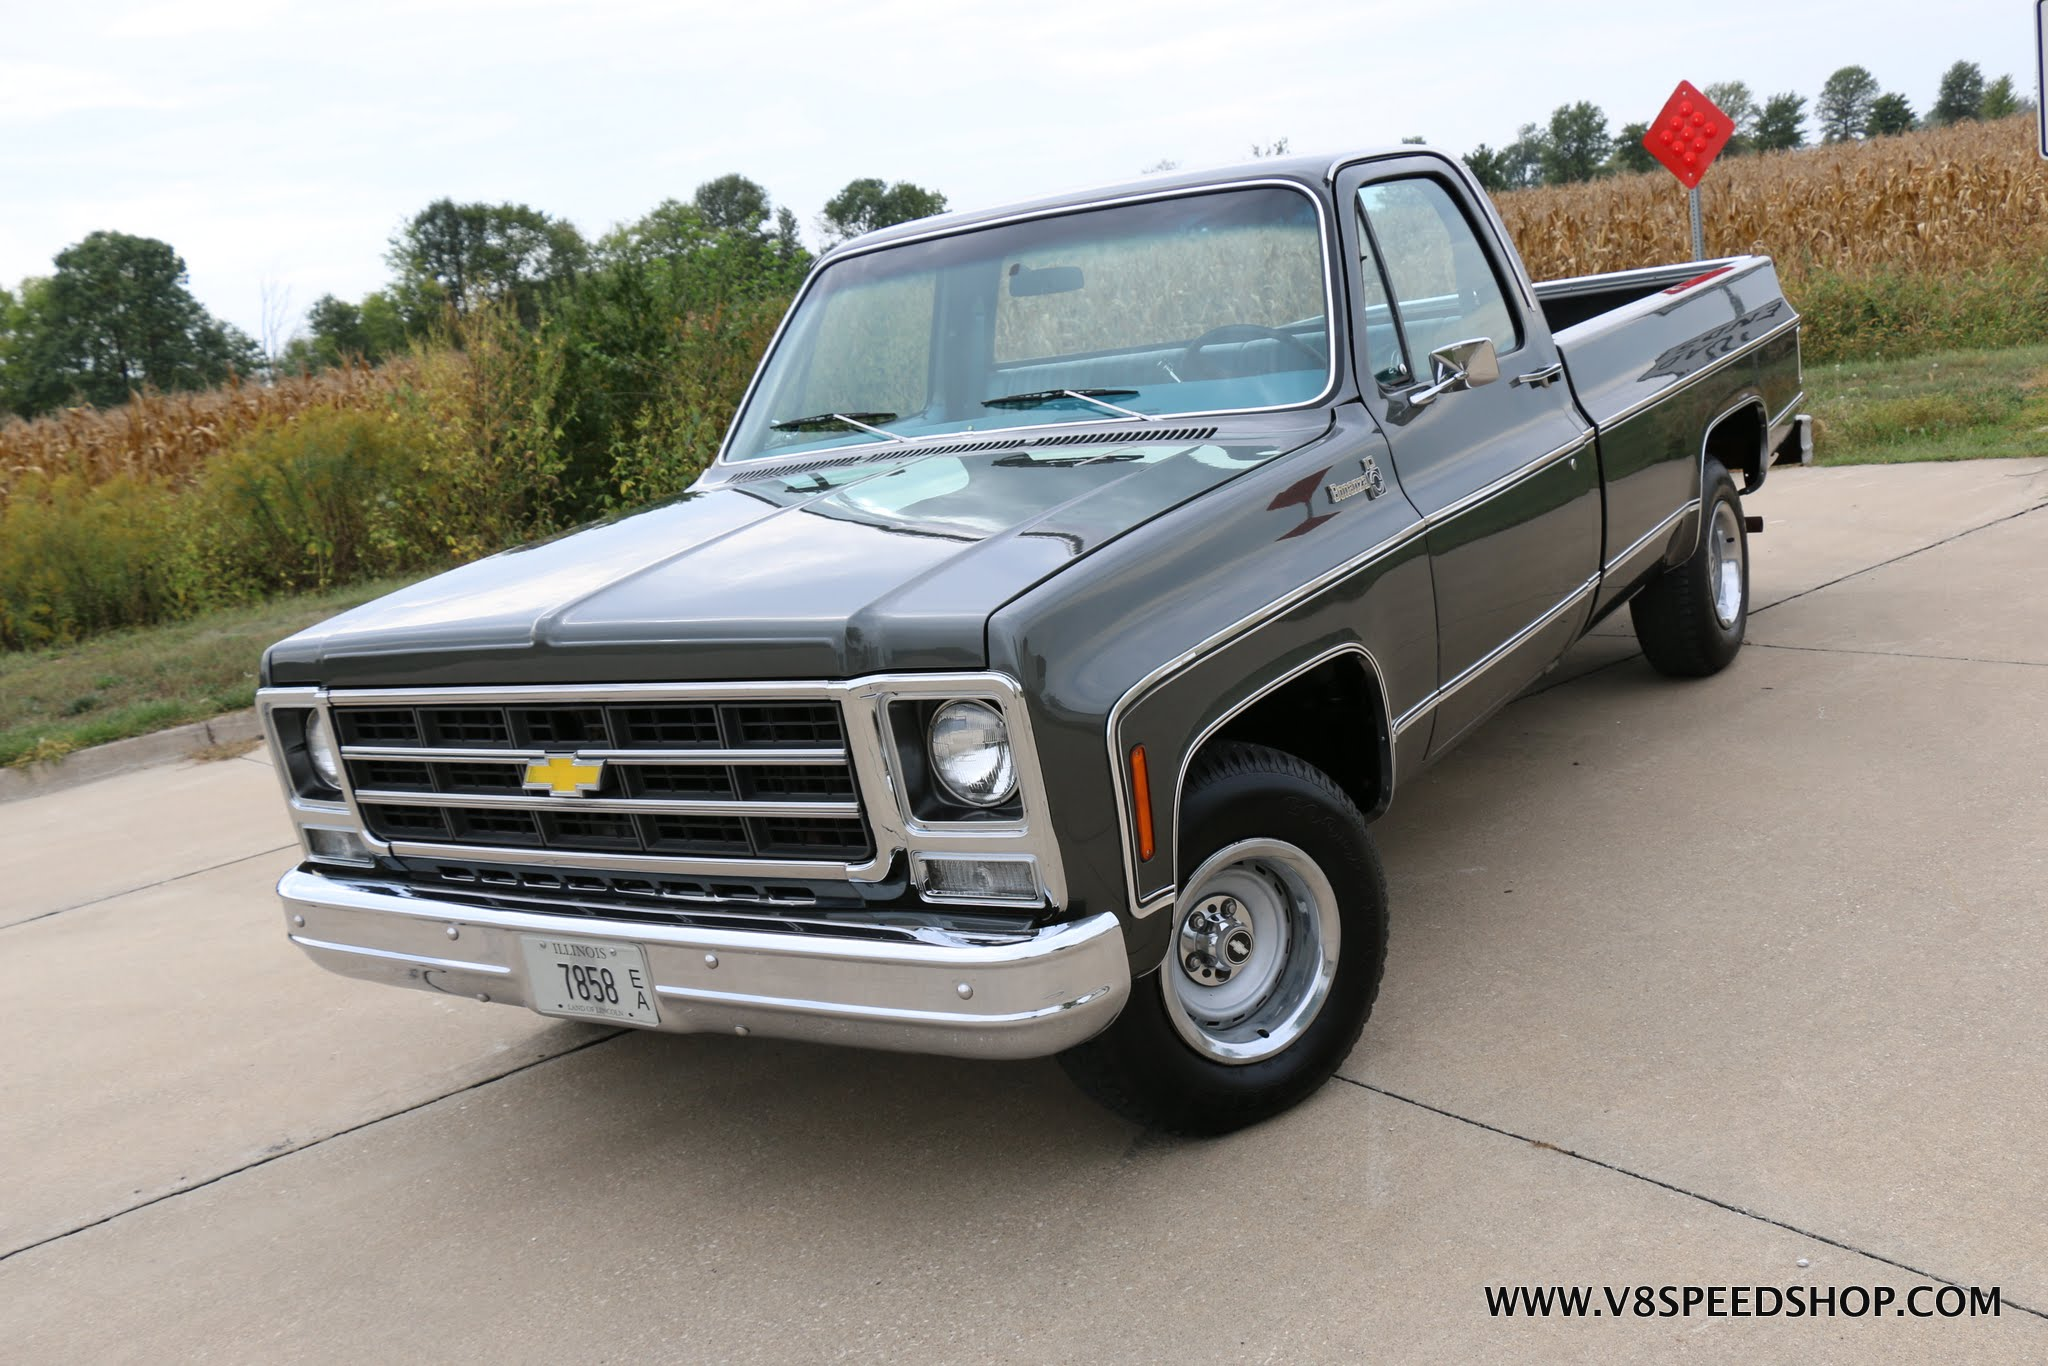 1979 Chevrolet Bonanza Pickup Restoration At V8 Speed & Resto Shop